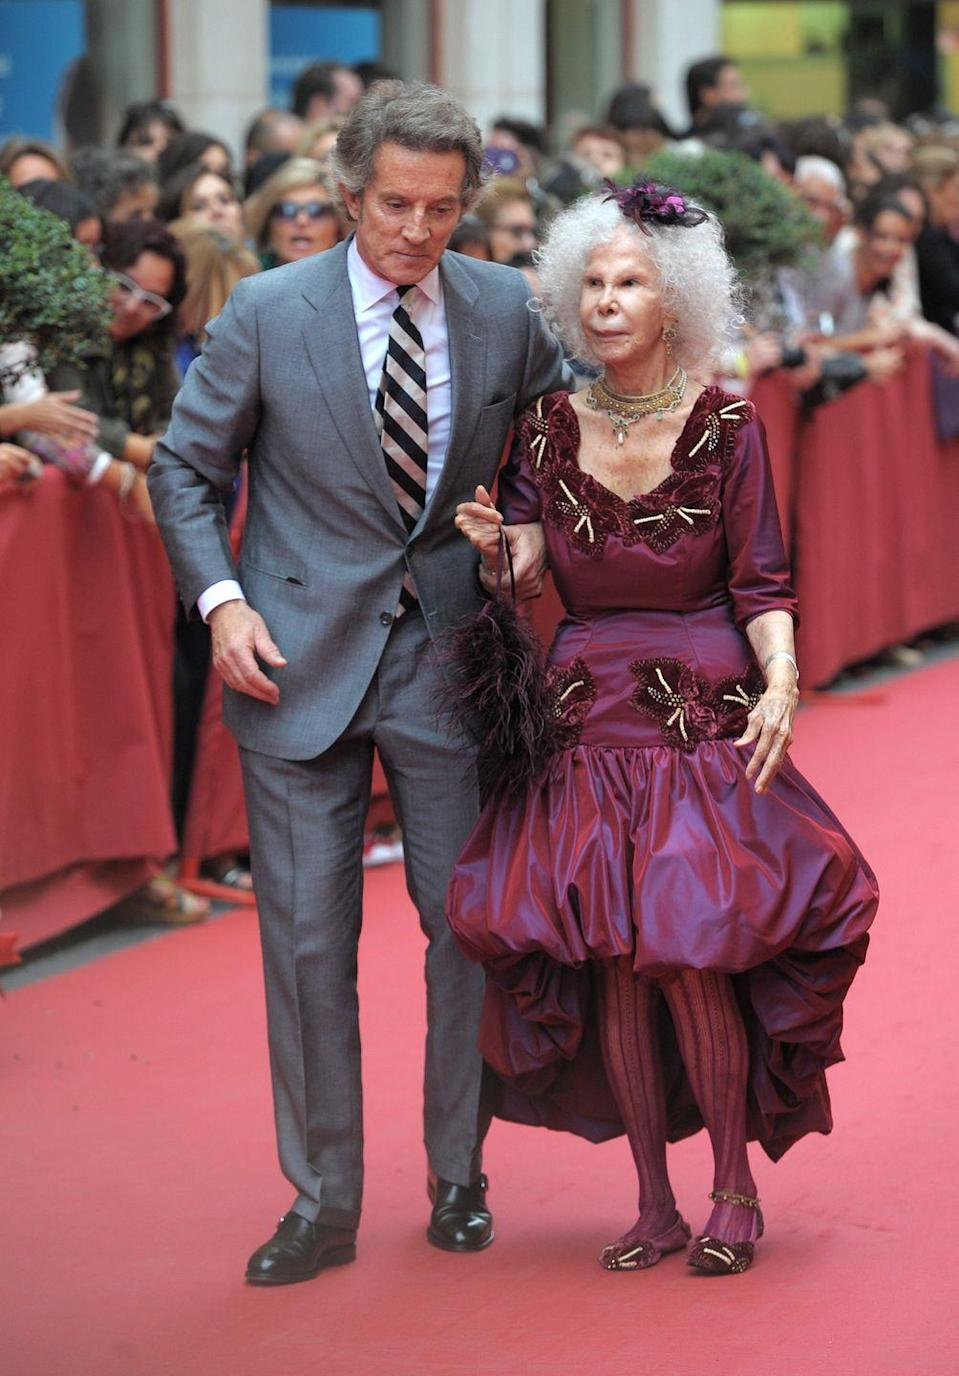 <p>The Duchess of Alba, Cayetana Fitz-James Stuart, married civil servant Alfonso Díez in 2011. At the time of their marriage the Duchess was 85 and her husband was 60, to the worry of her family. She announced that Díez had officially renounced all claims to her $5 billion fortune. The Duchess of Alba, who possessed the most aristocratic titles of anyone in the world, passed away in 2014. </p>